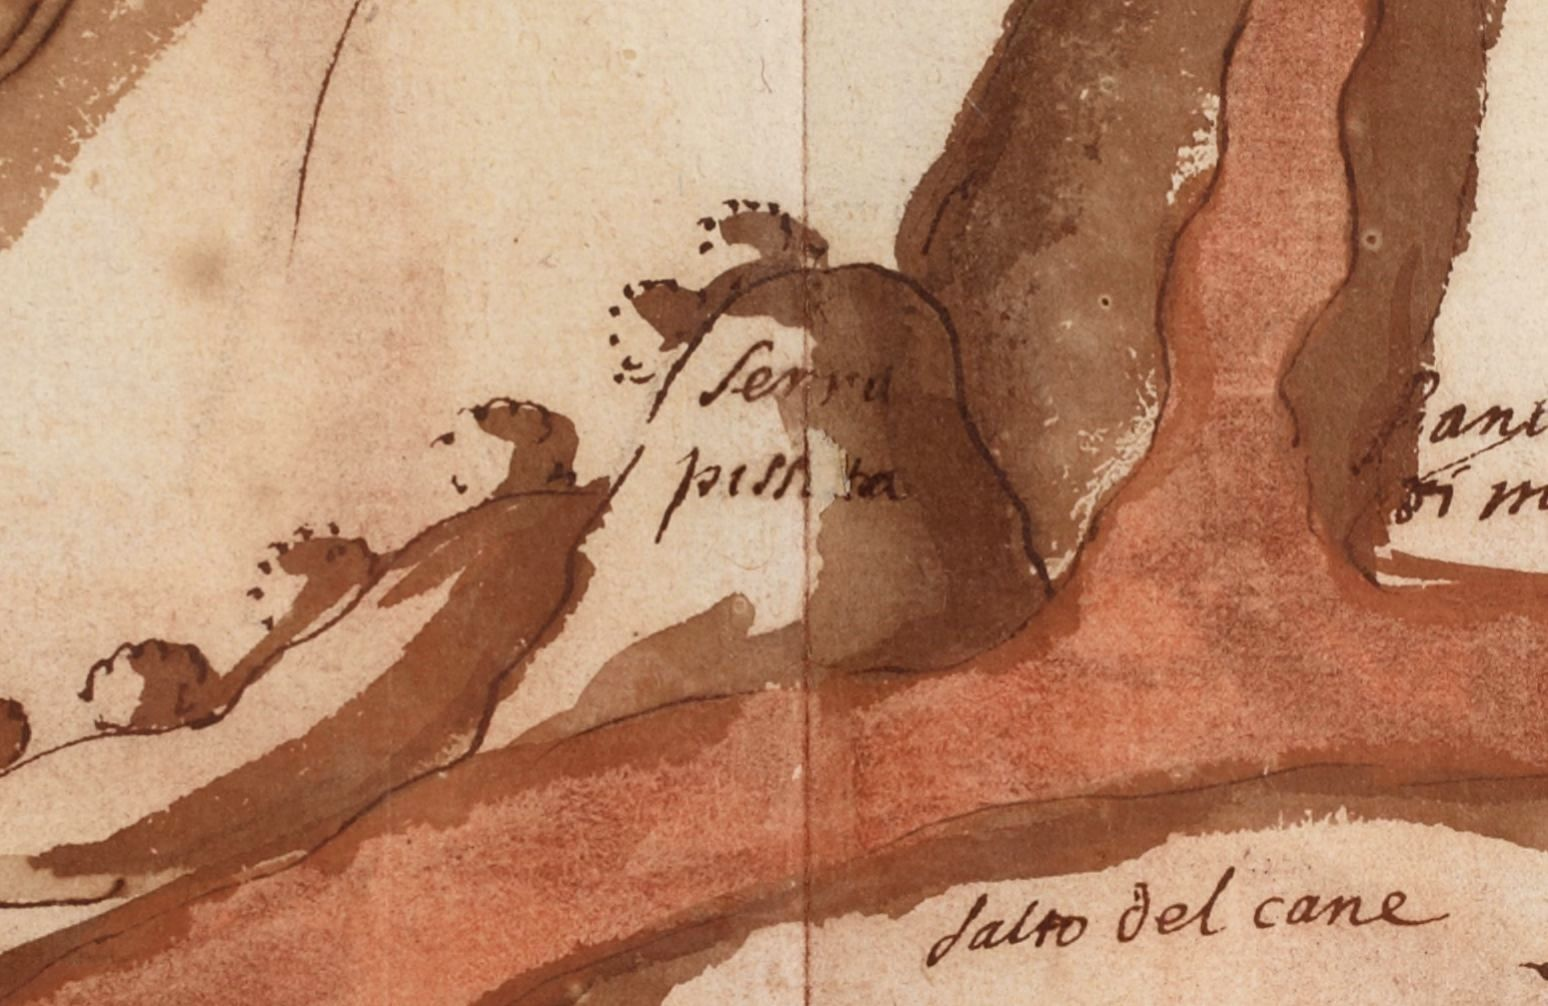 Monochromatic map of A.Leal / 1635 - details on the separation in 2 branches of the flow near Serra Pizzato and Mt. Salto del Cane